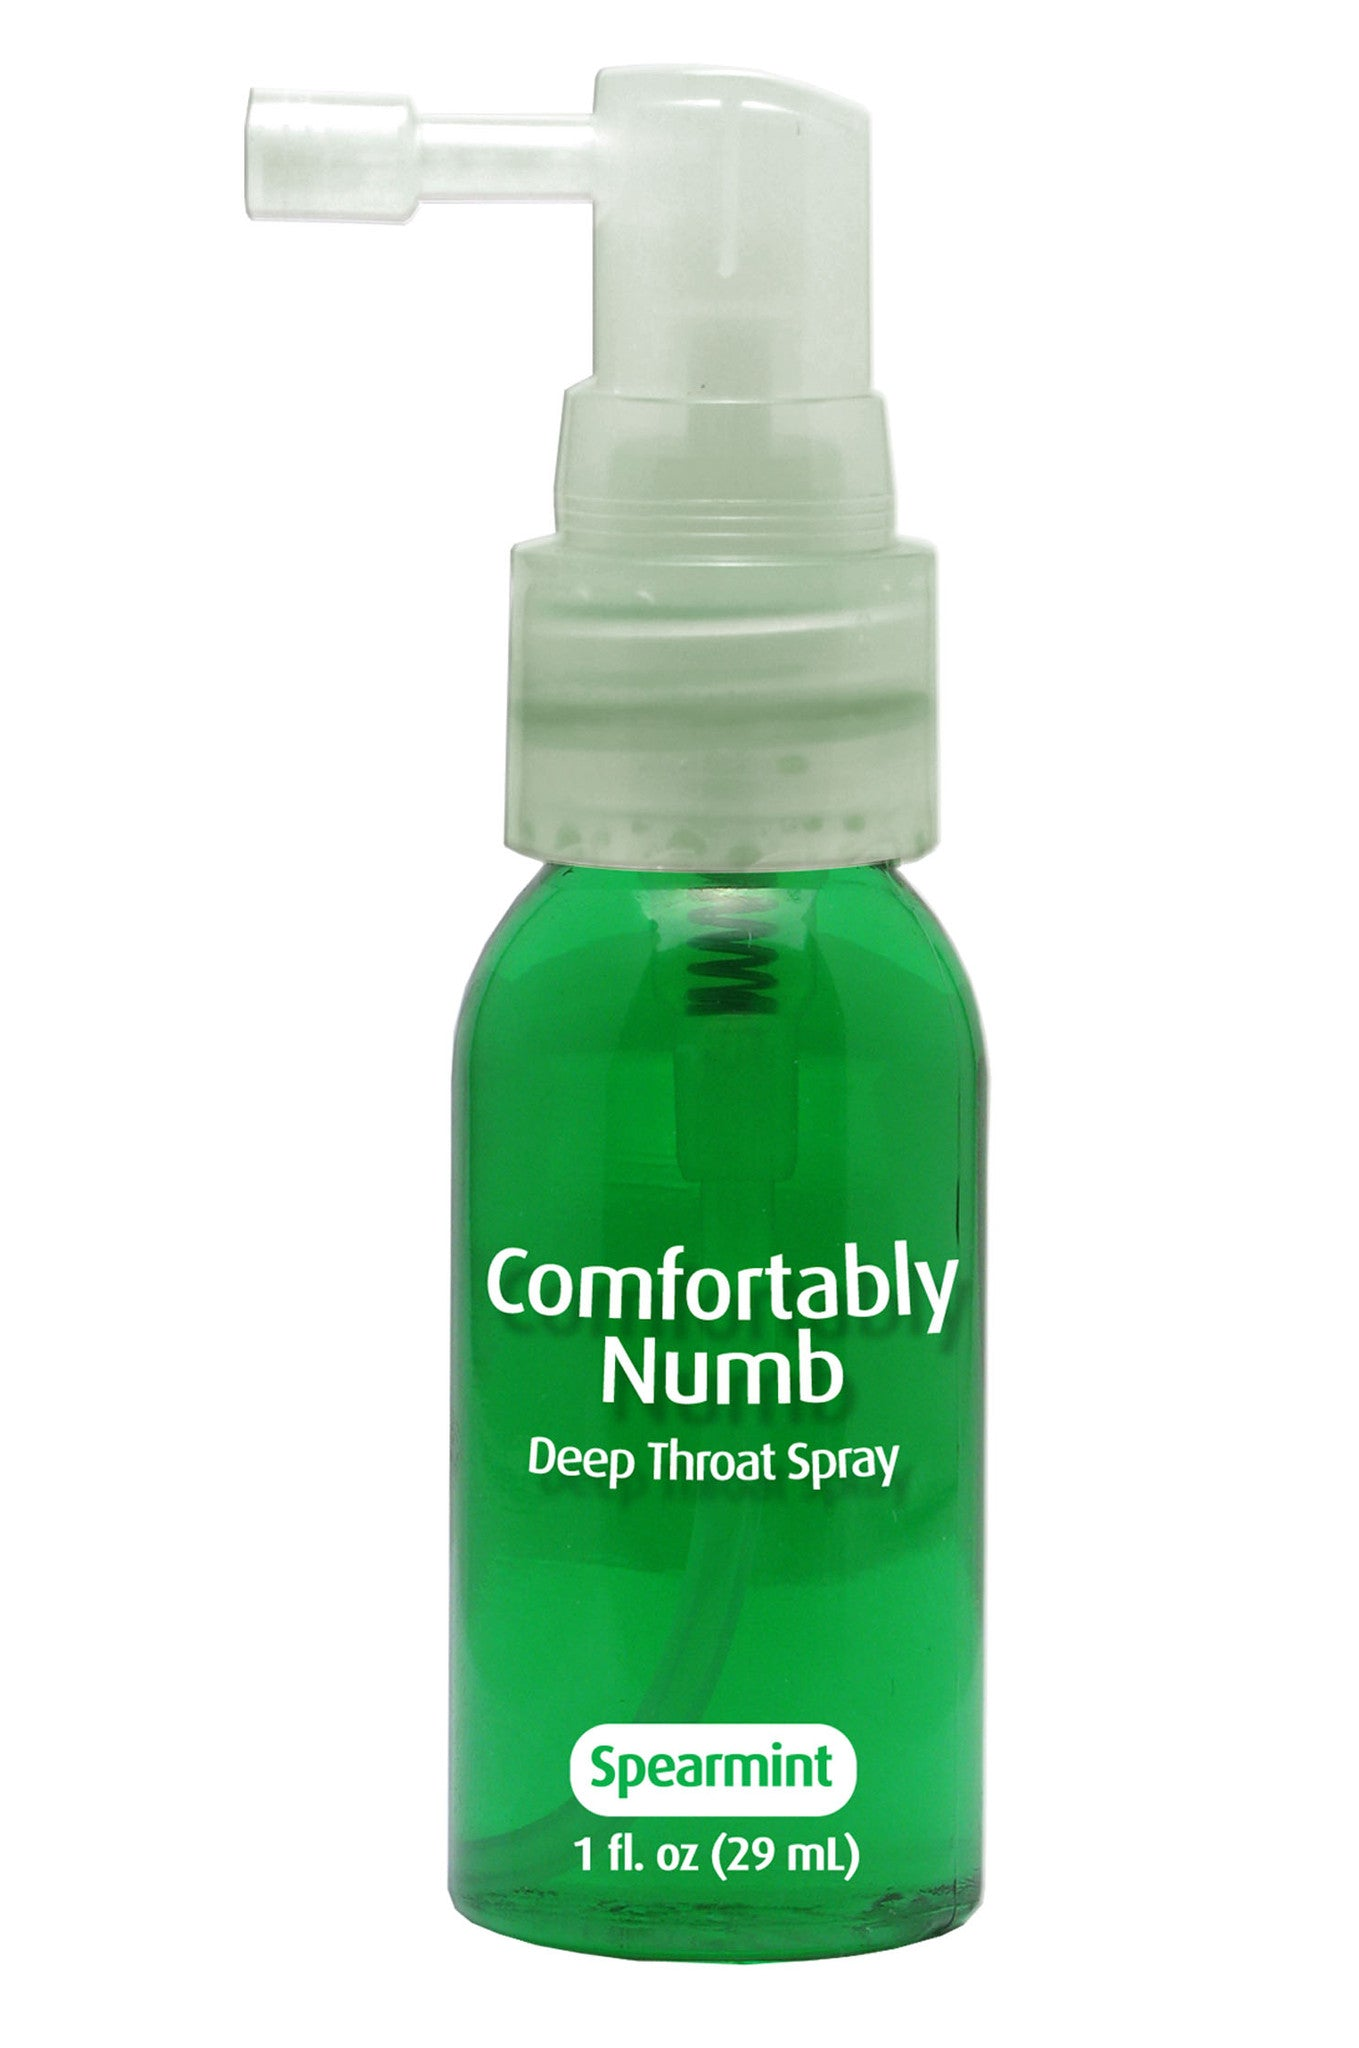 Comfortably Numb Deep Throat Spray